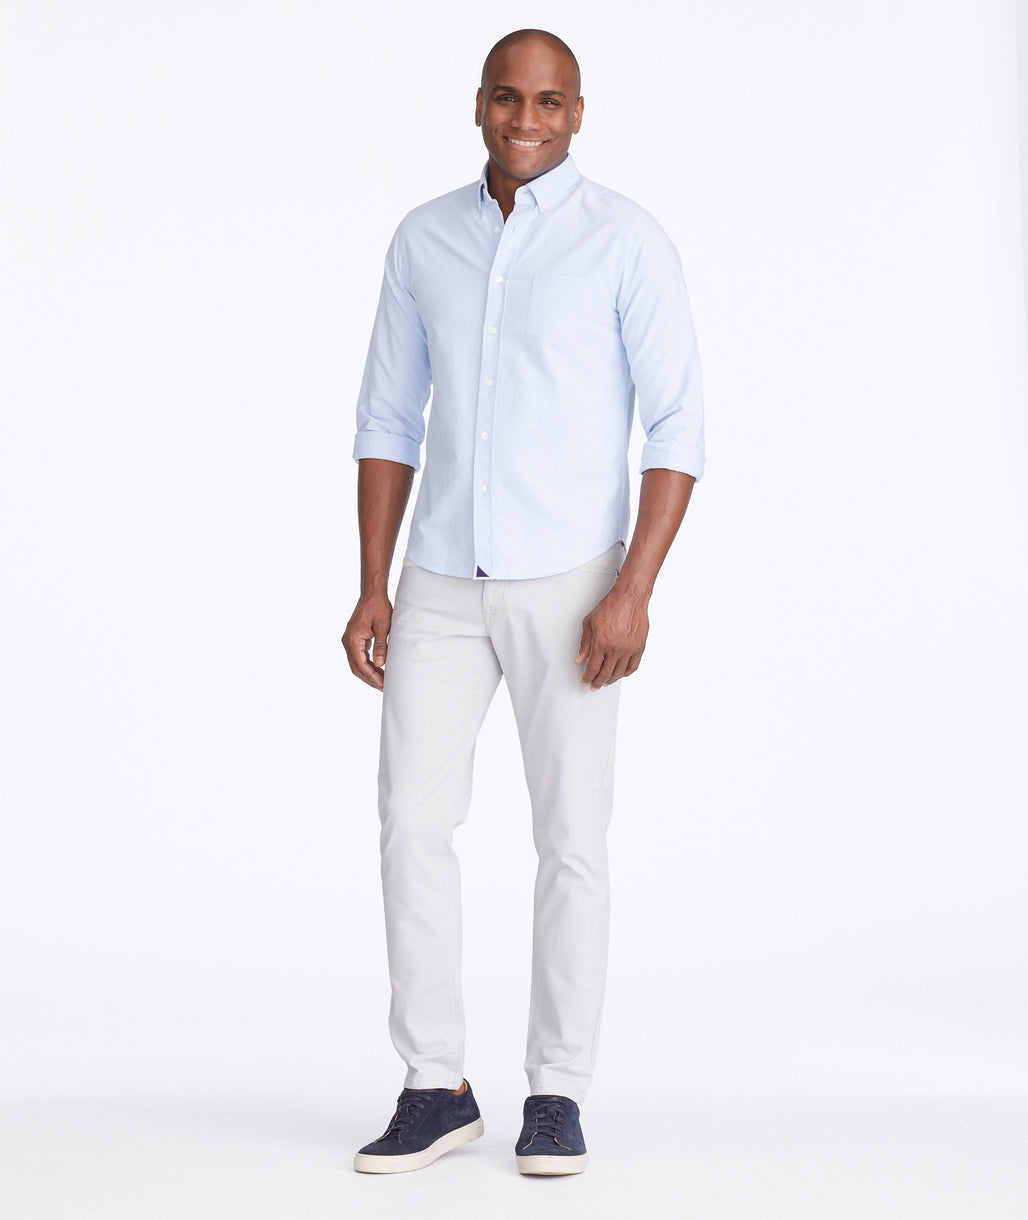 Model wearing a Light Grey 5-Pocket Pants